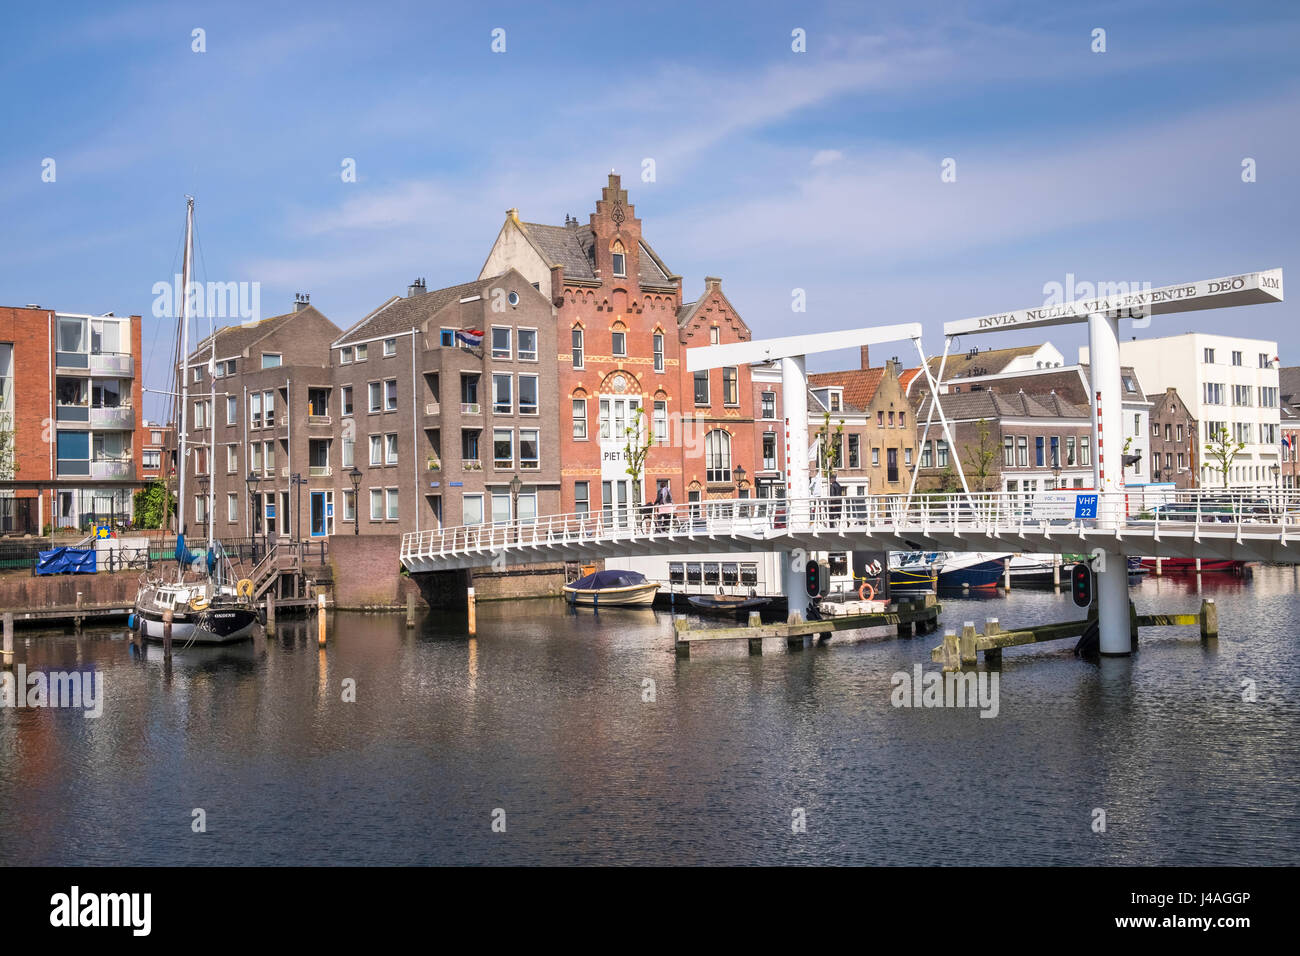 Boats and traditional dutch architecture in the historic area of Delfshaven, Rotterdam, The Netherlands. Stock Photo